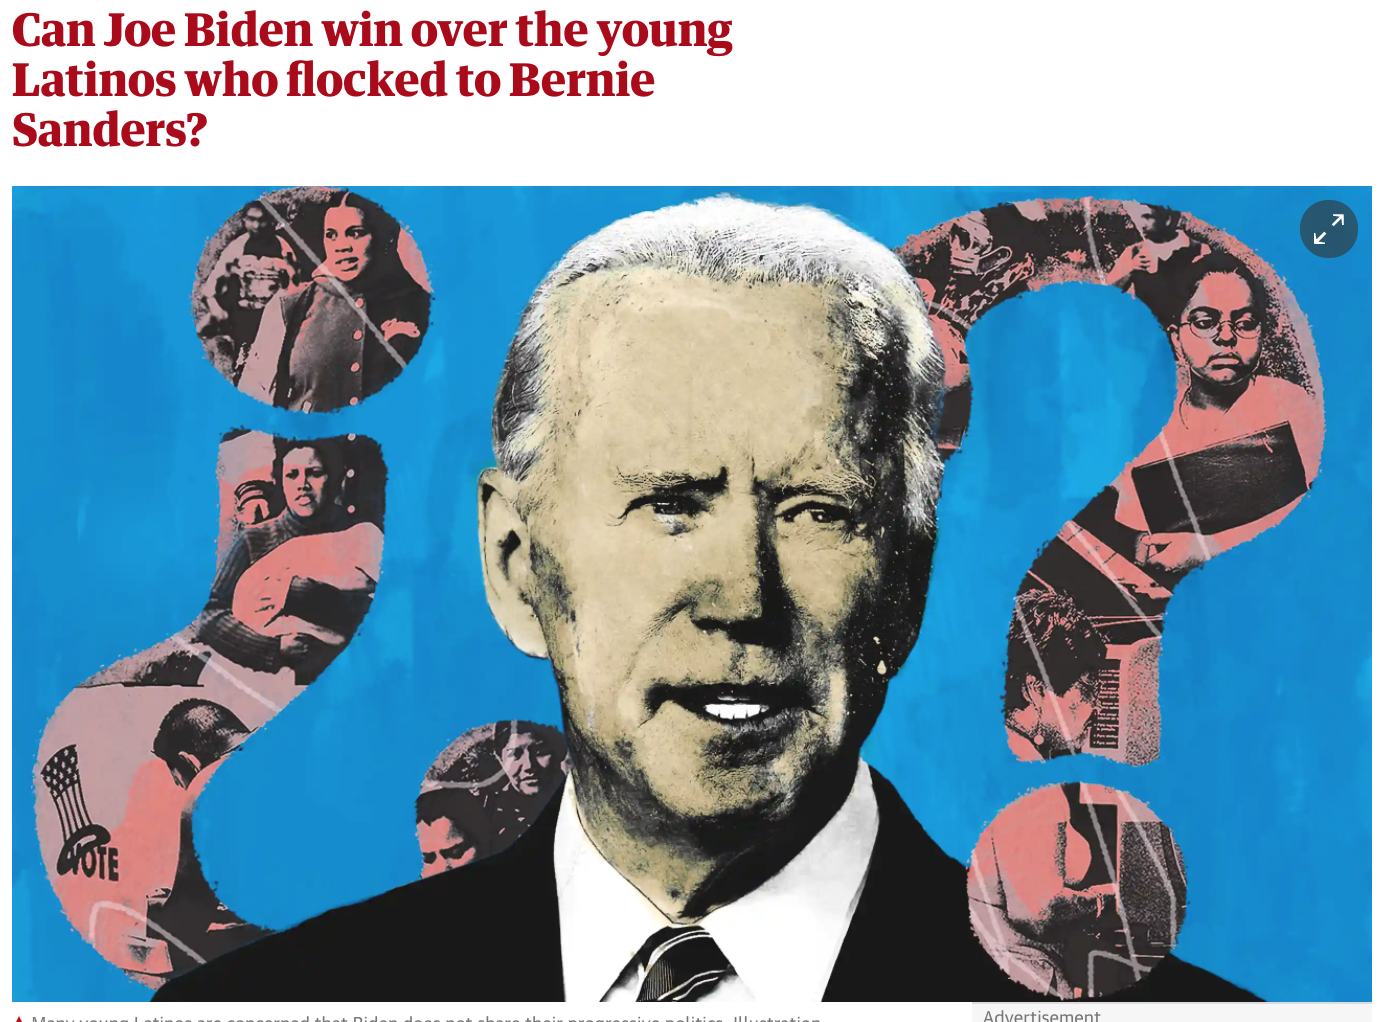 Can Joe Biden win over the young Latinos who flocked to Bernie Sanders?